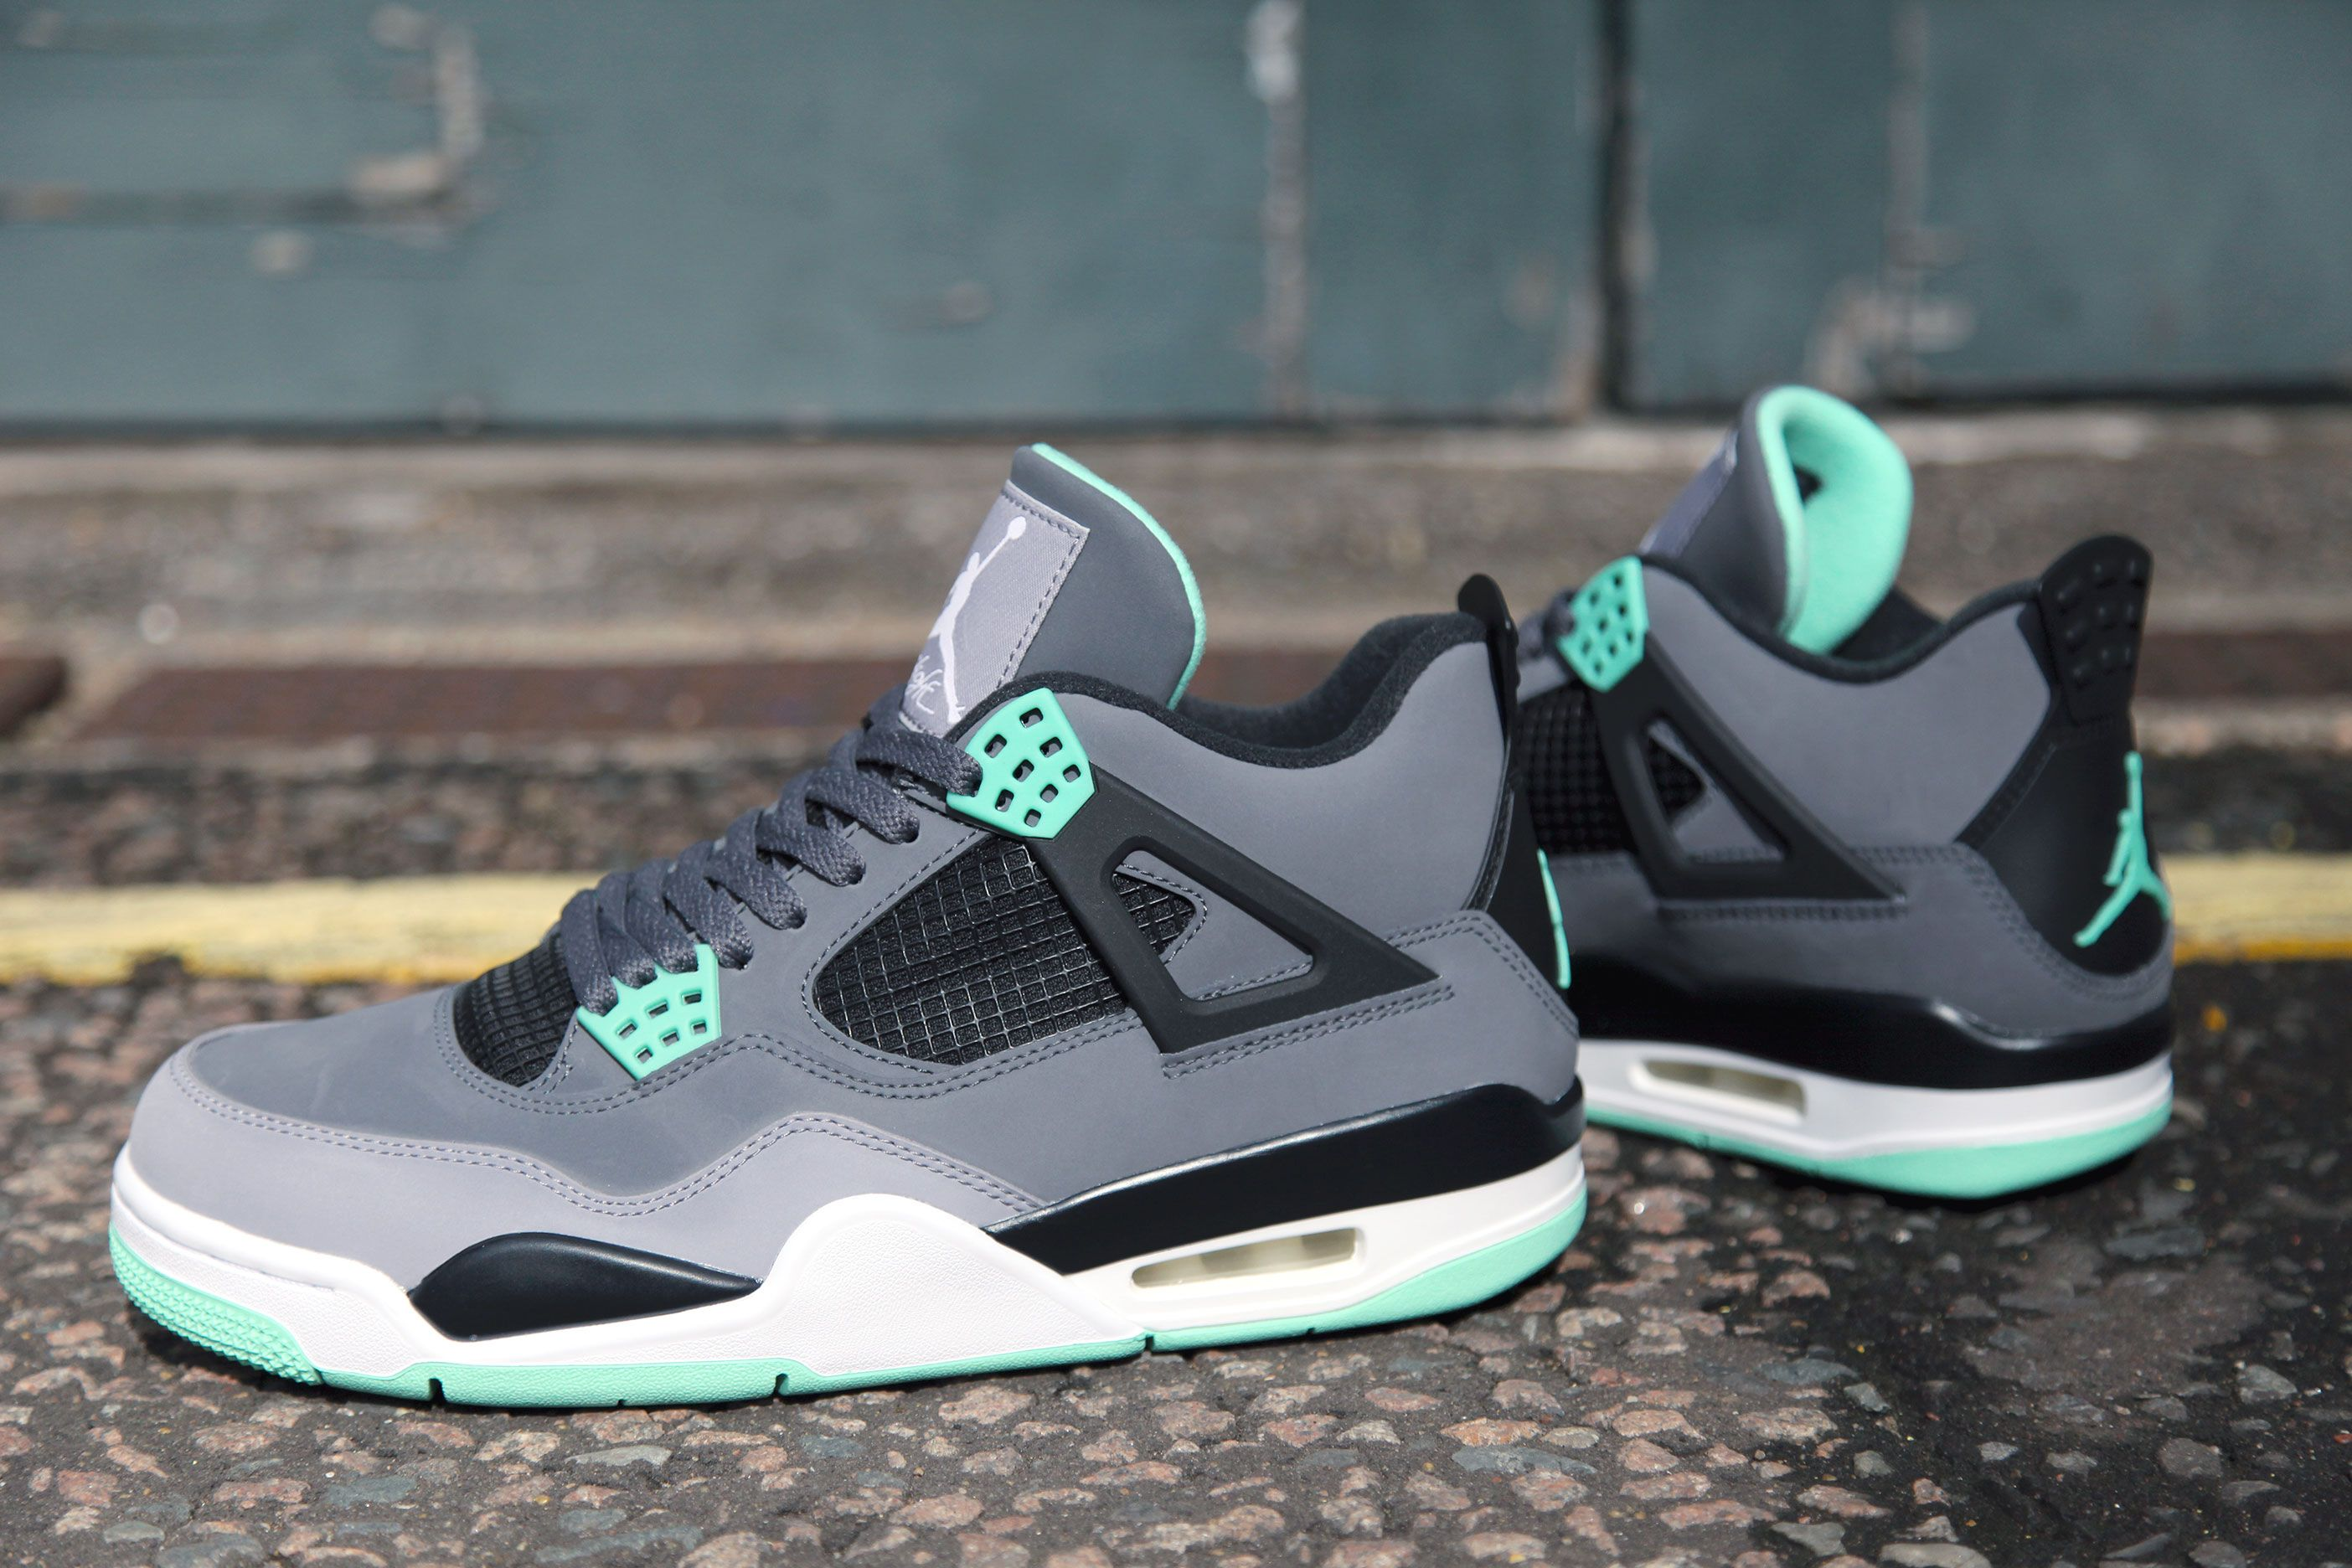 Jordan 4 Green Glow Source: Internet